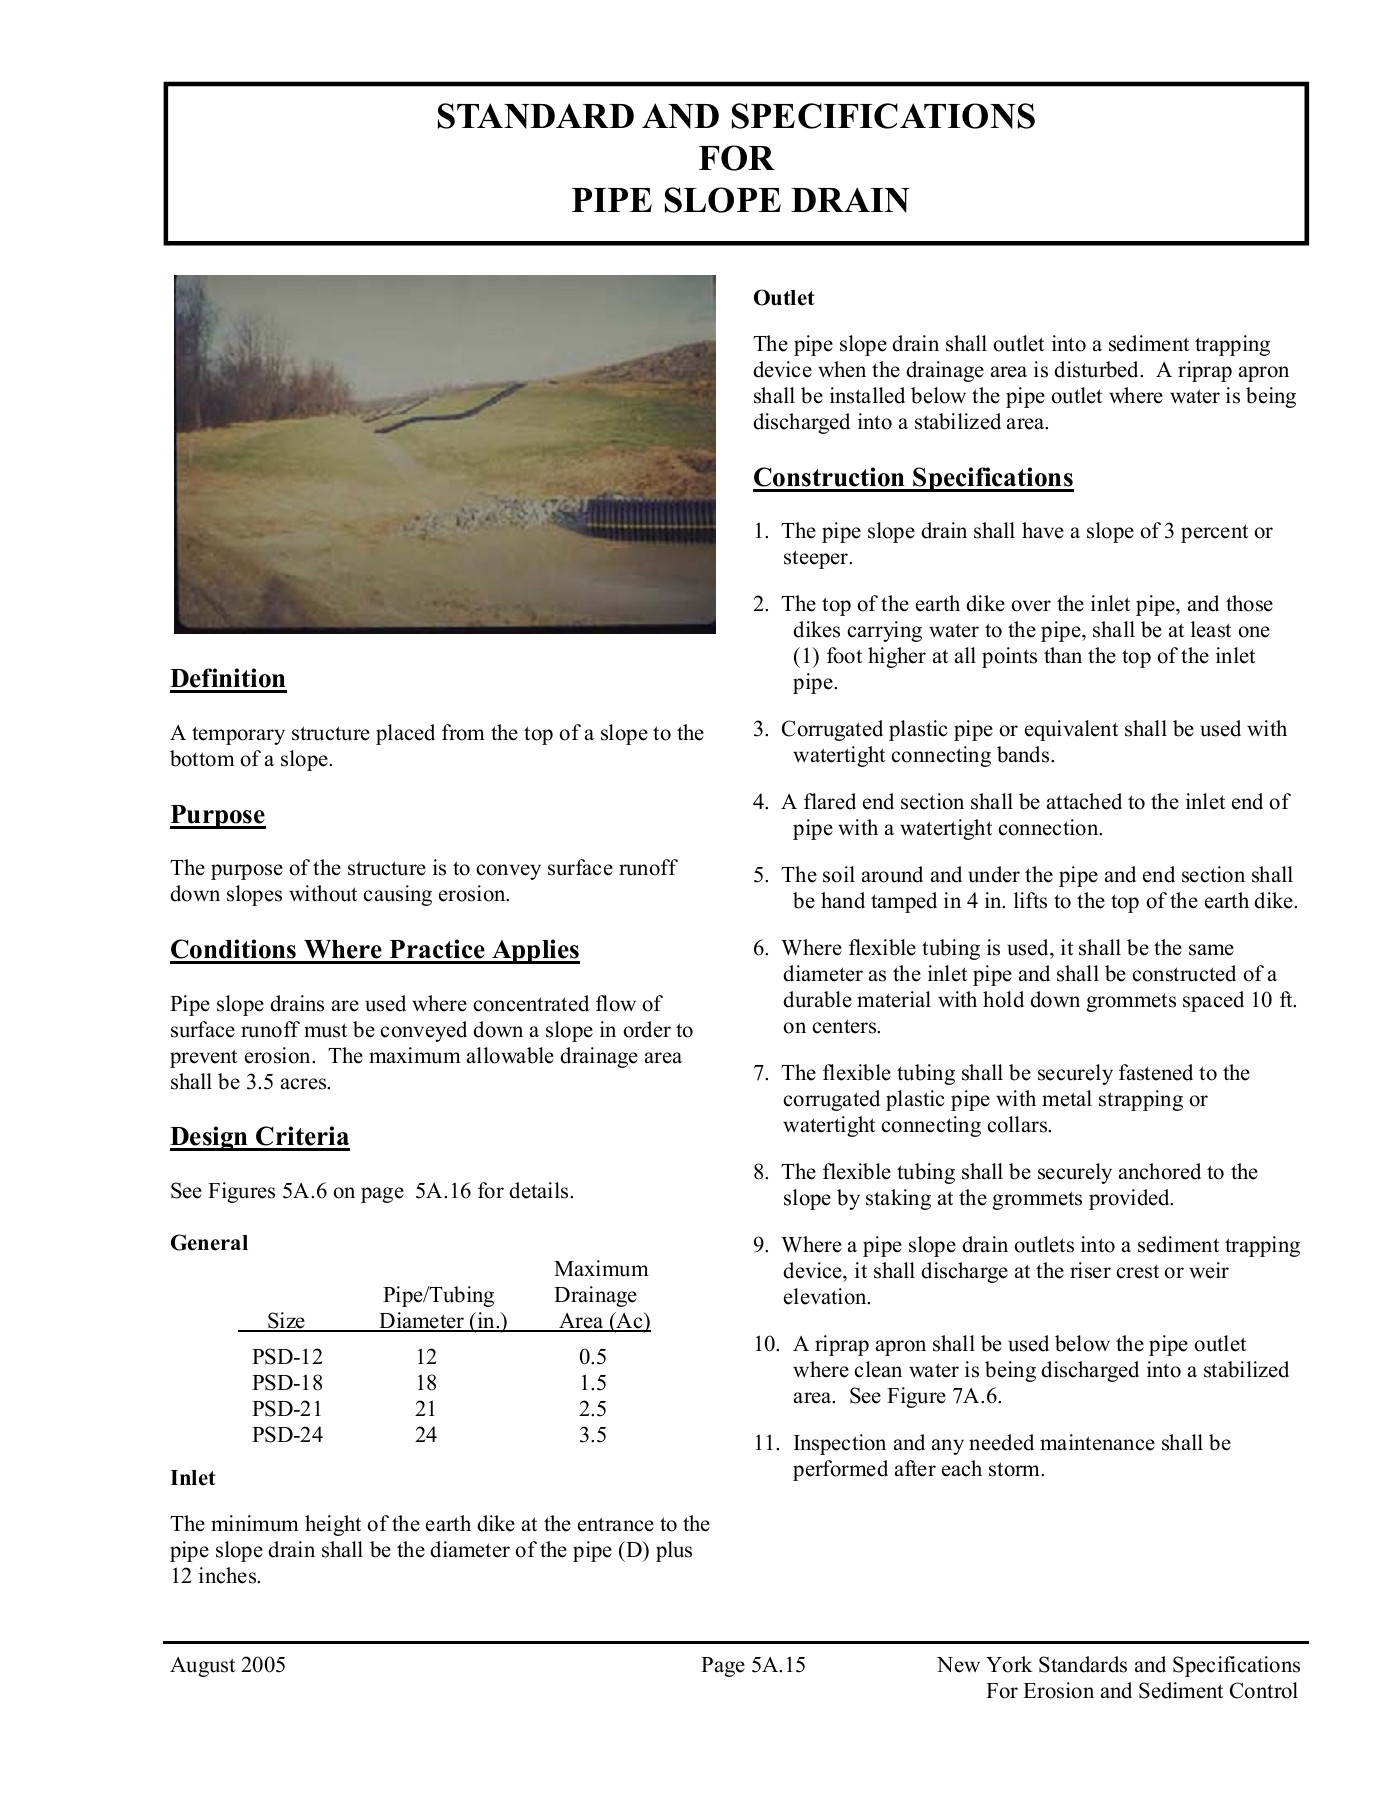 STANDARD AND SPECIFICATIONS FOR PIPE SLOPE DRAIN